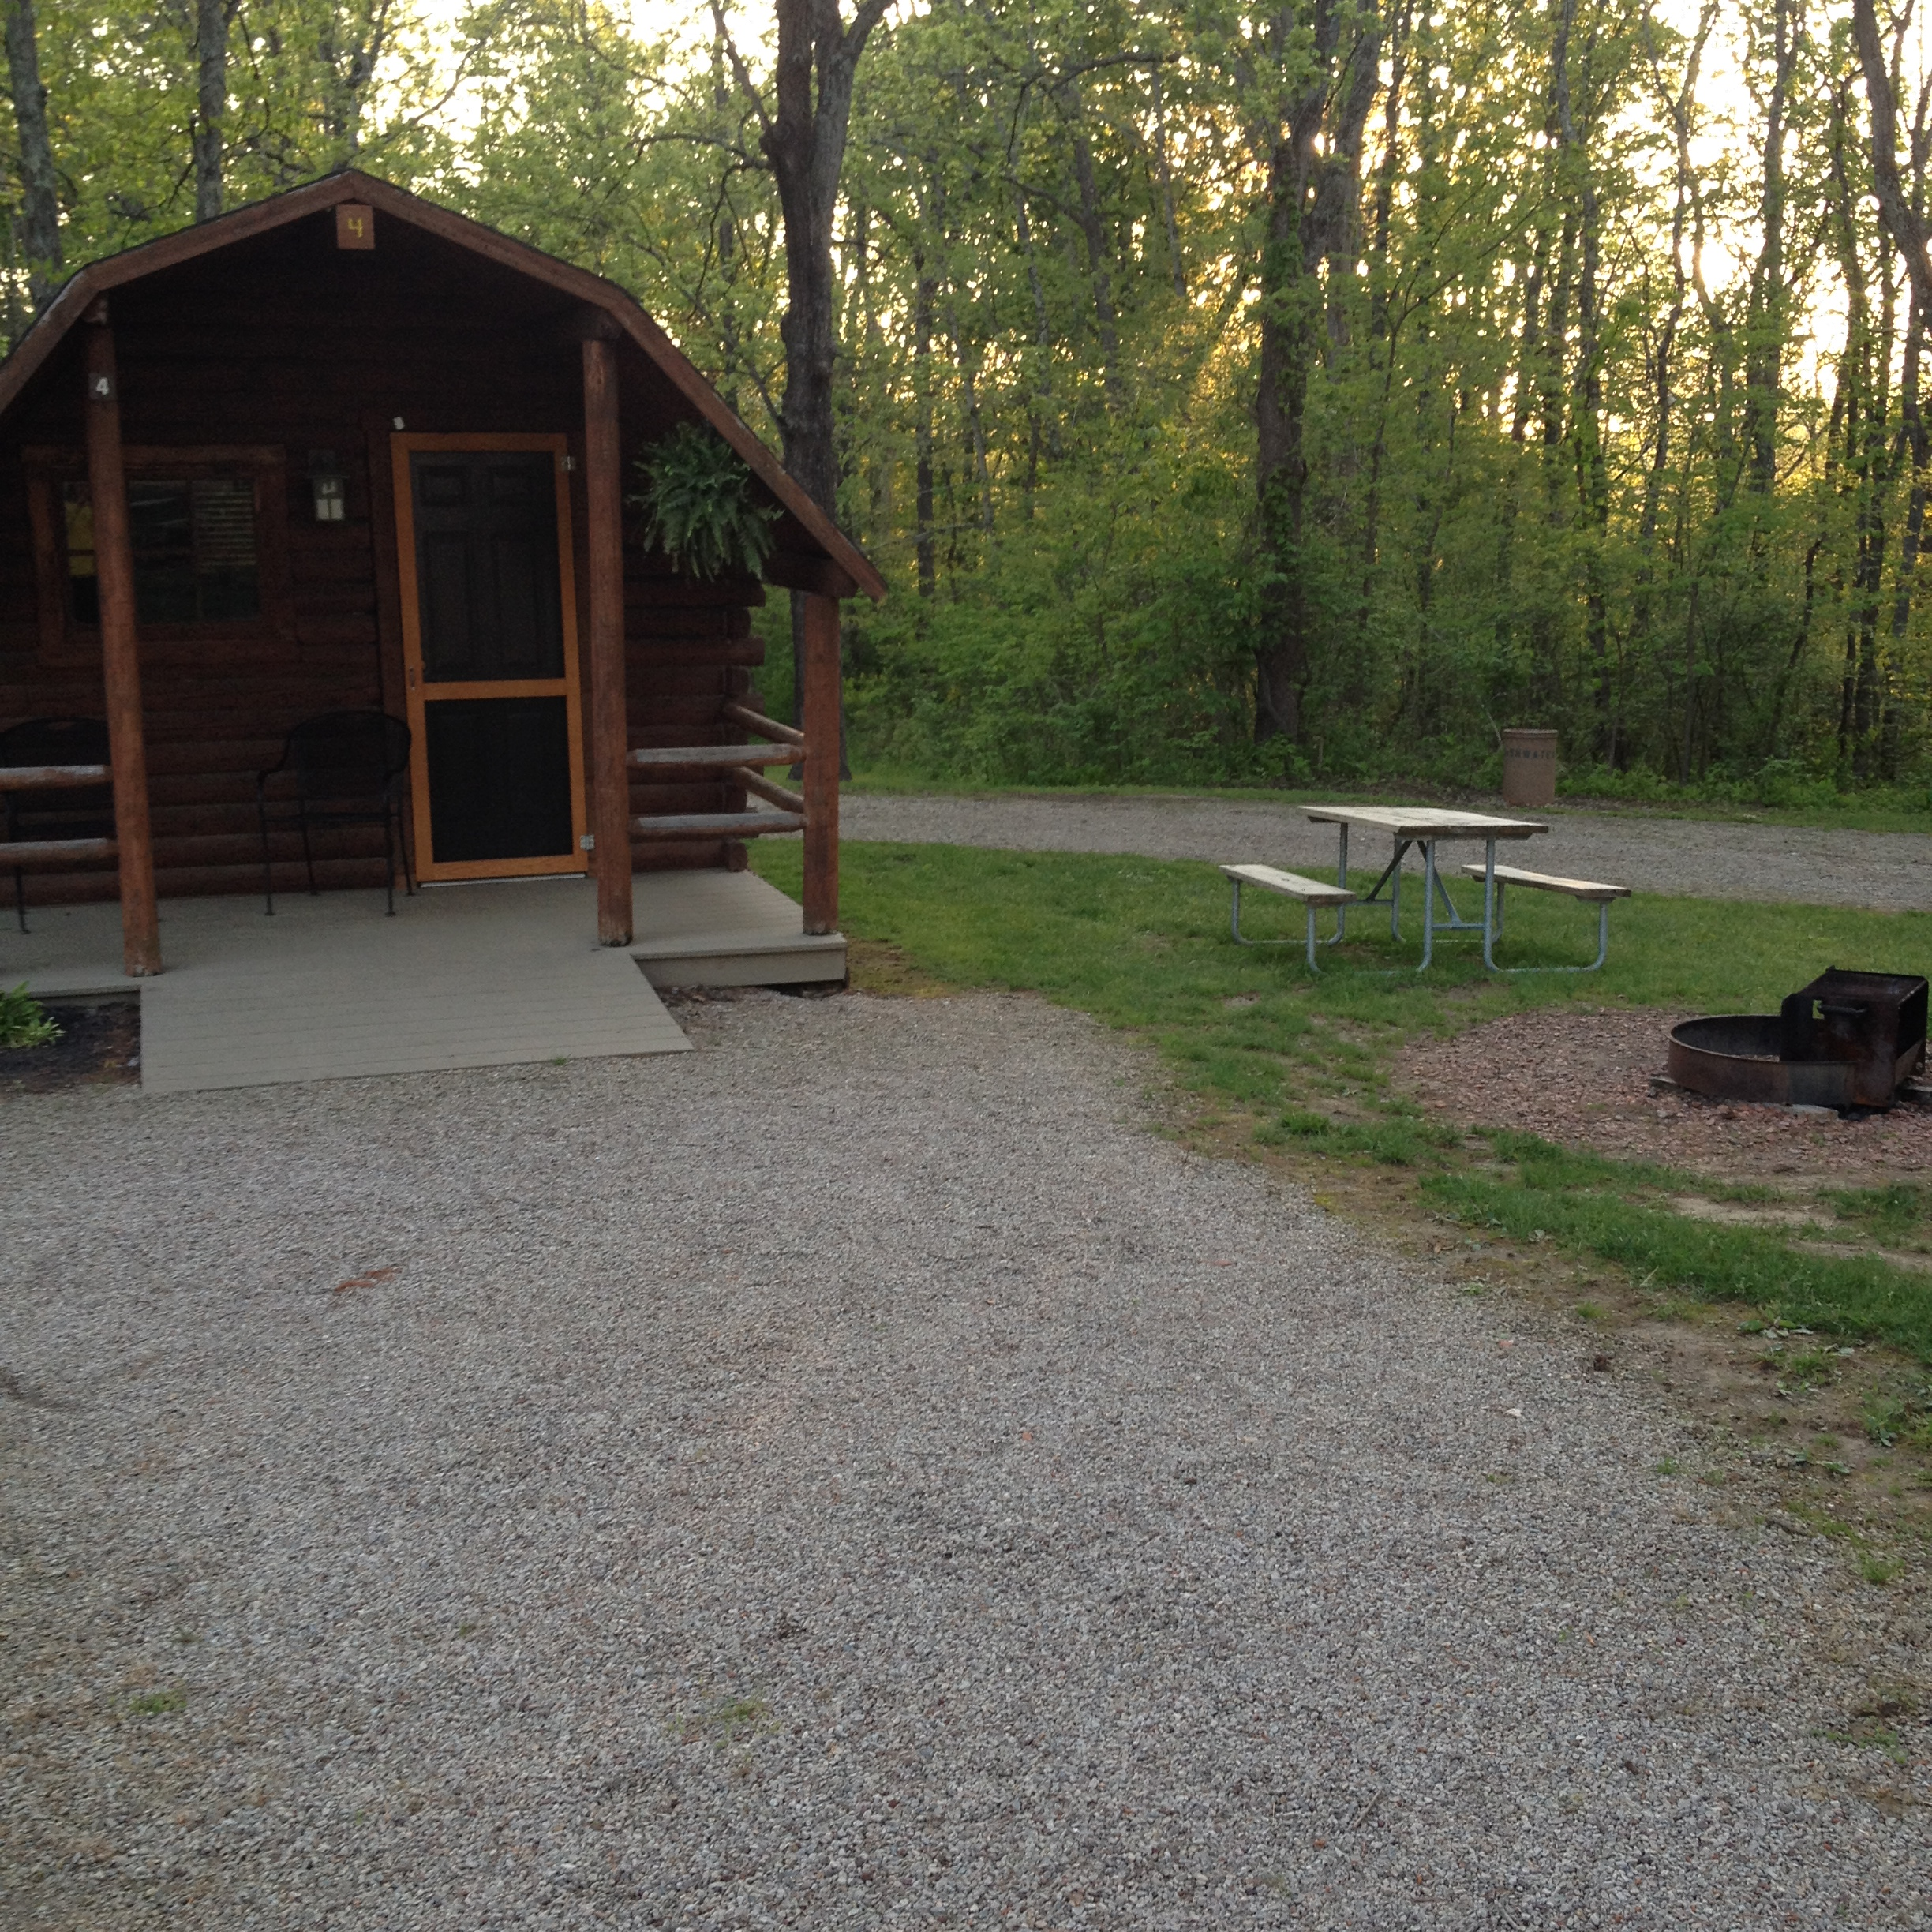 redawning in ohio vacation cabins hocking romantic rental frame escape logan property a hills